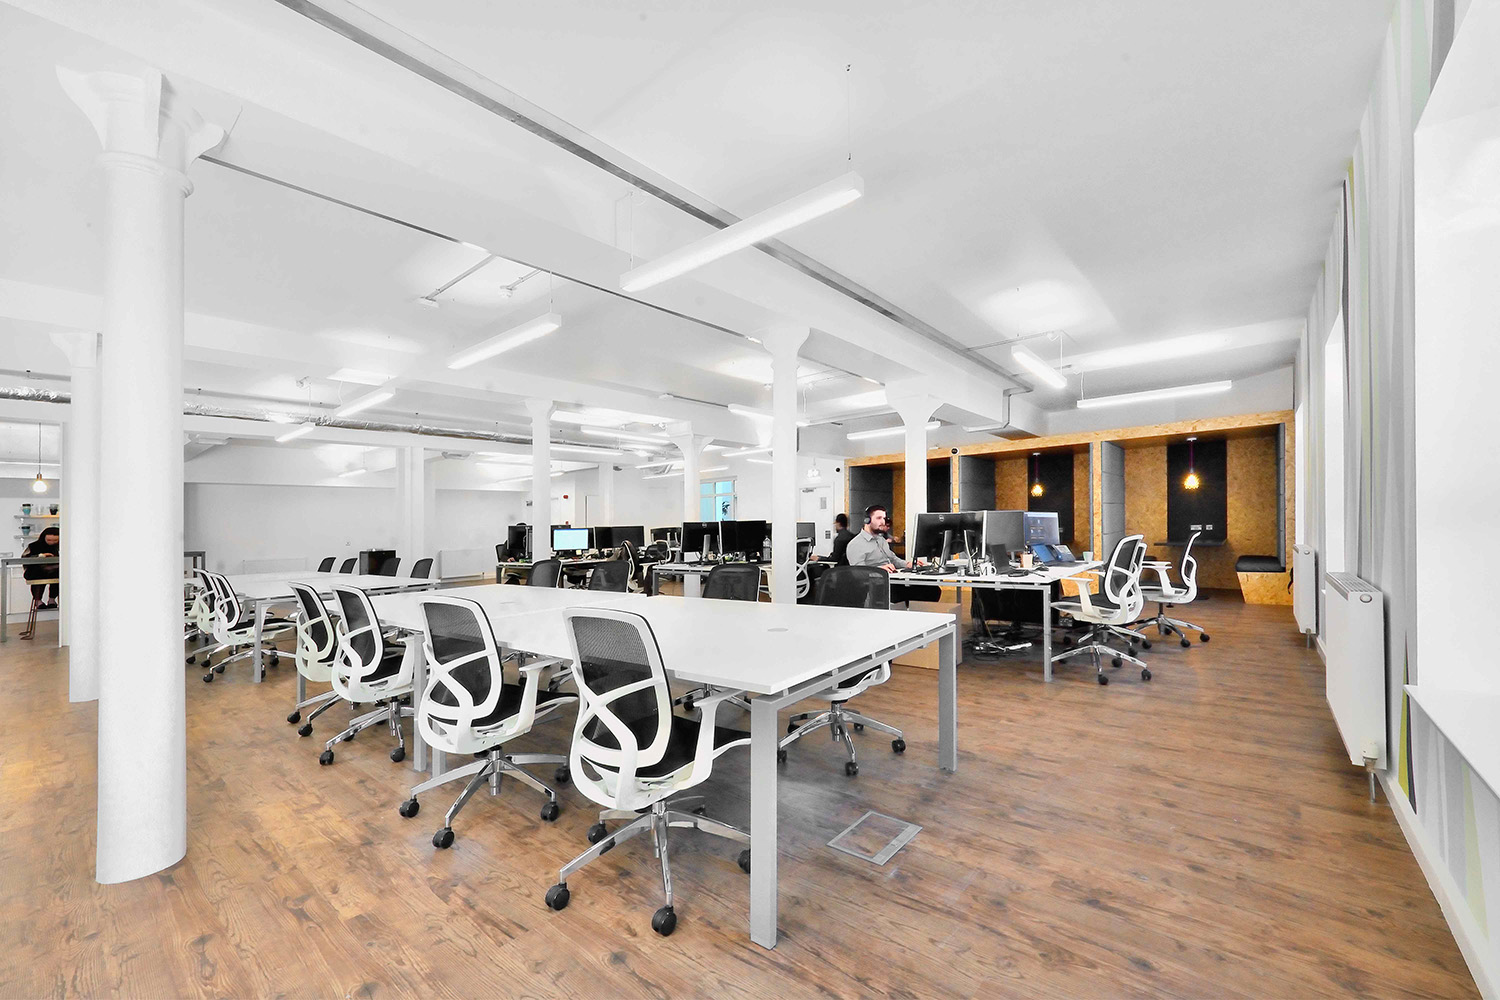 Foxglove Offices are a services office space in Leith, Edinburgh. Snowdrop Services provide office cleaning to all of the offices across 3 floors. For professional office cleaning call Snowdrop Services